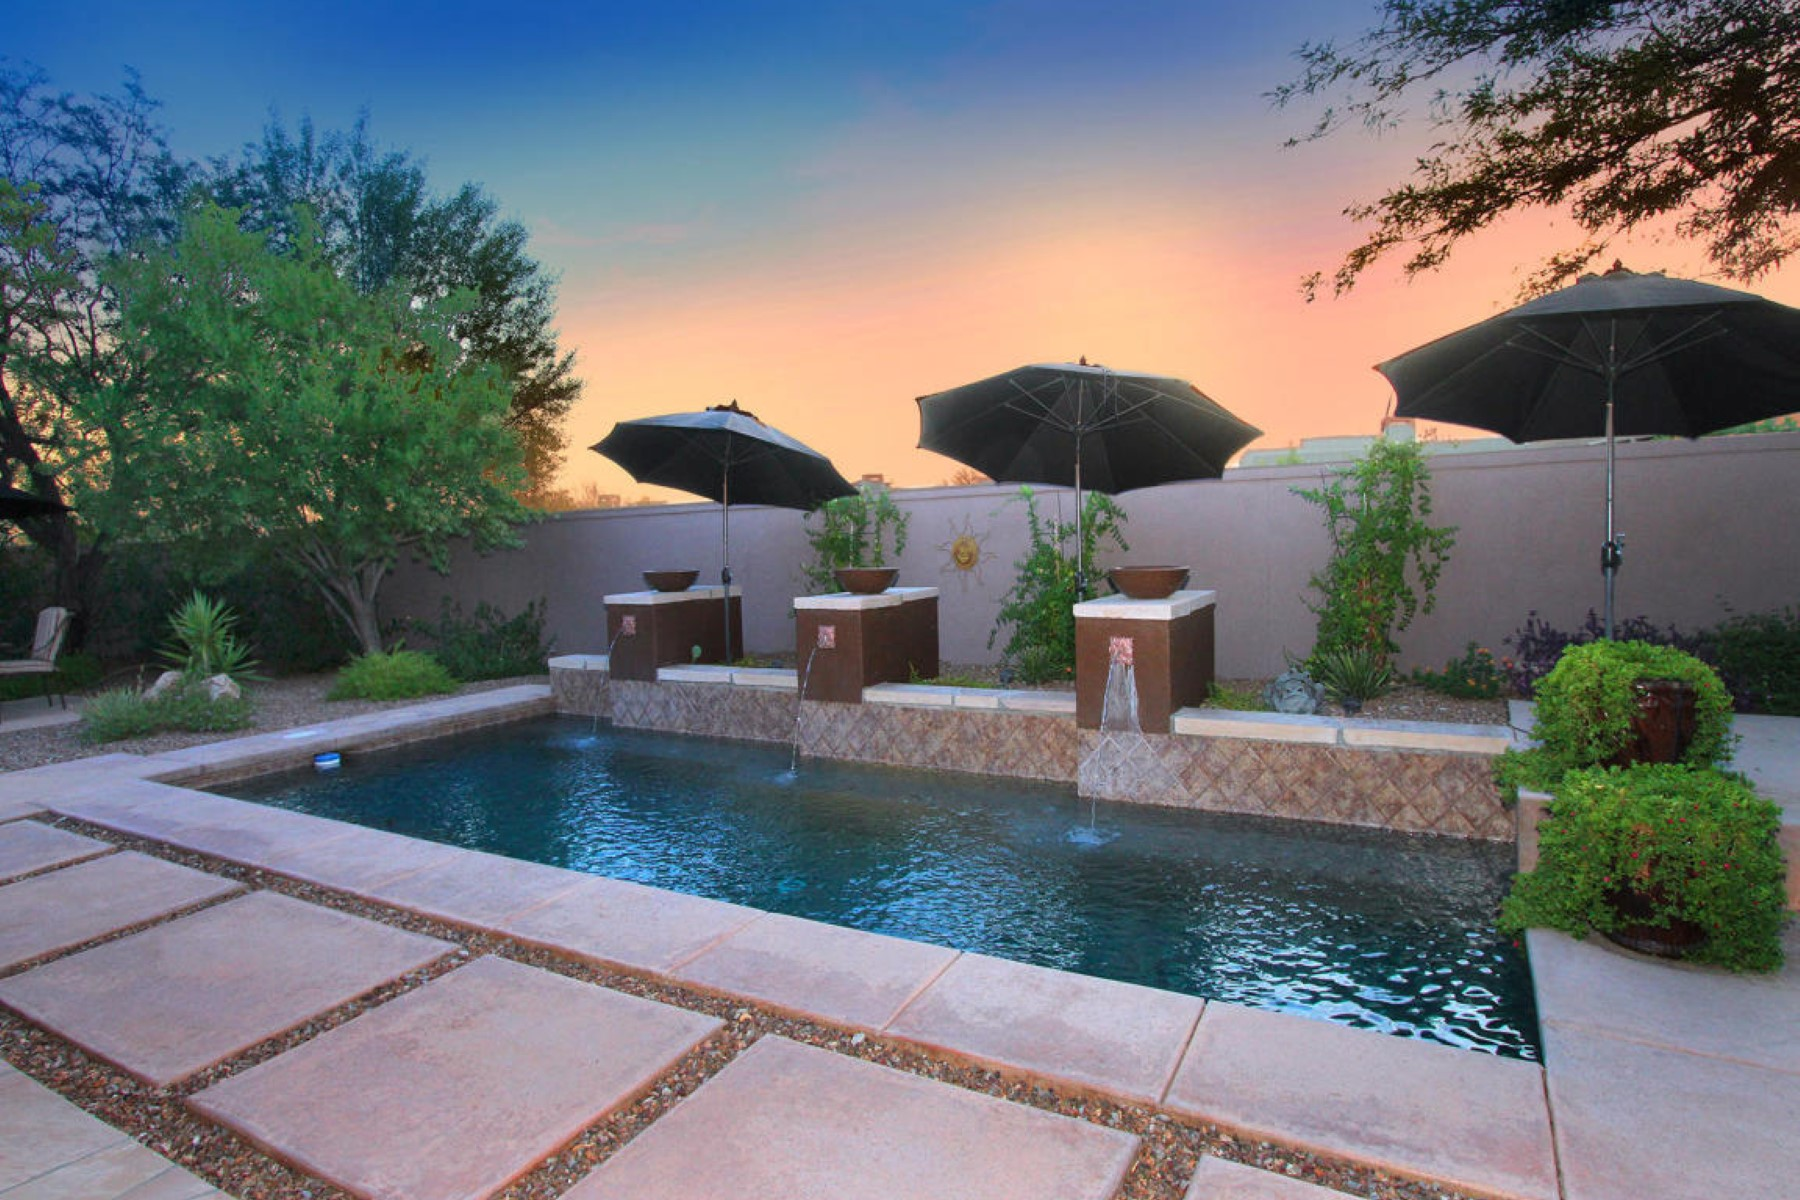 Single Family Home for Sale at Stunning Rancho Vistoso golf residence located in gated upscale community. 13869 N Steprock Canyon Place Oro Valley, Arizona 85755 United States